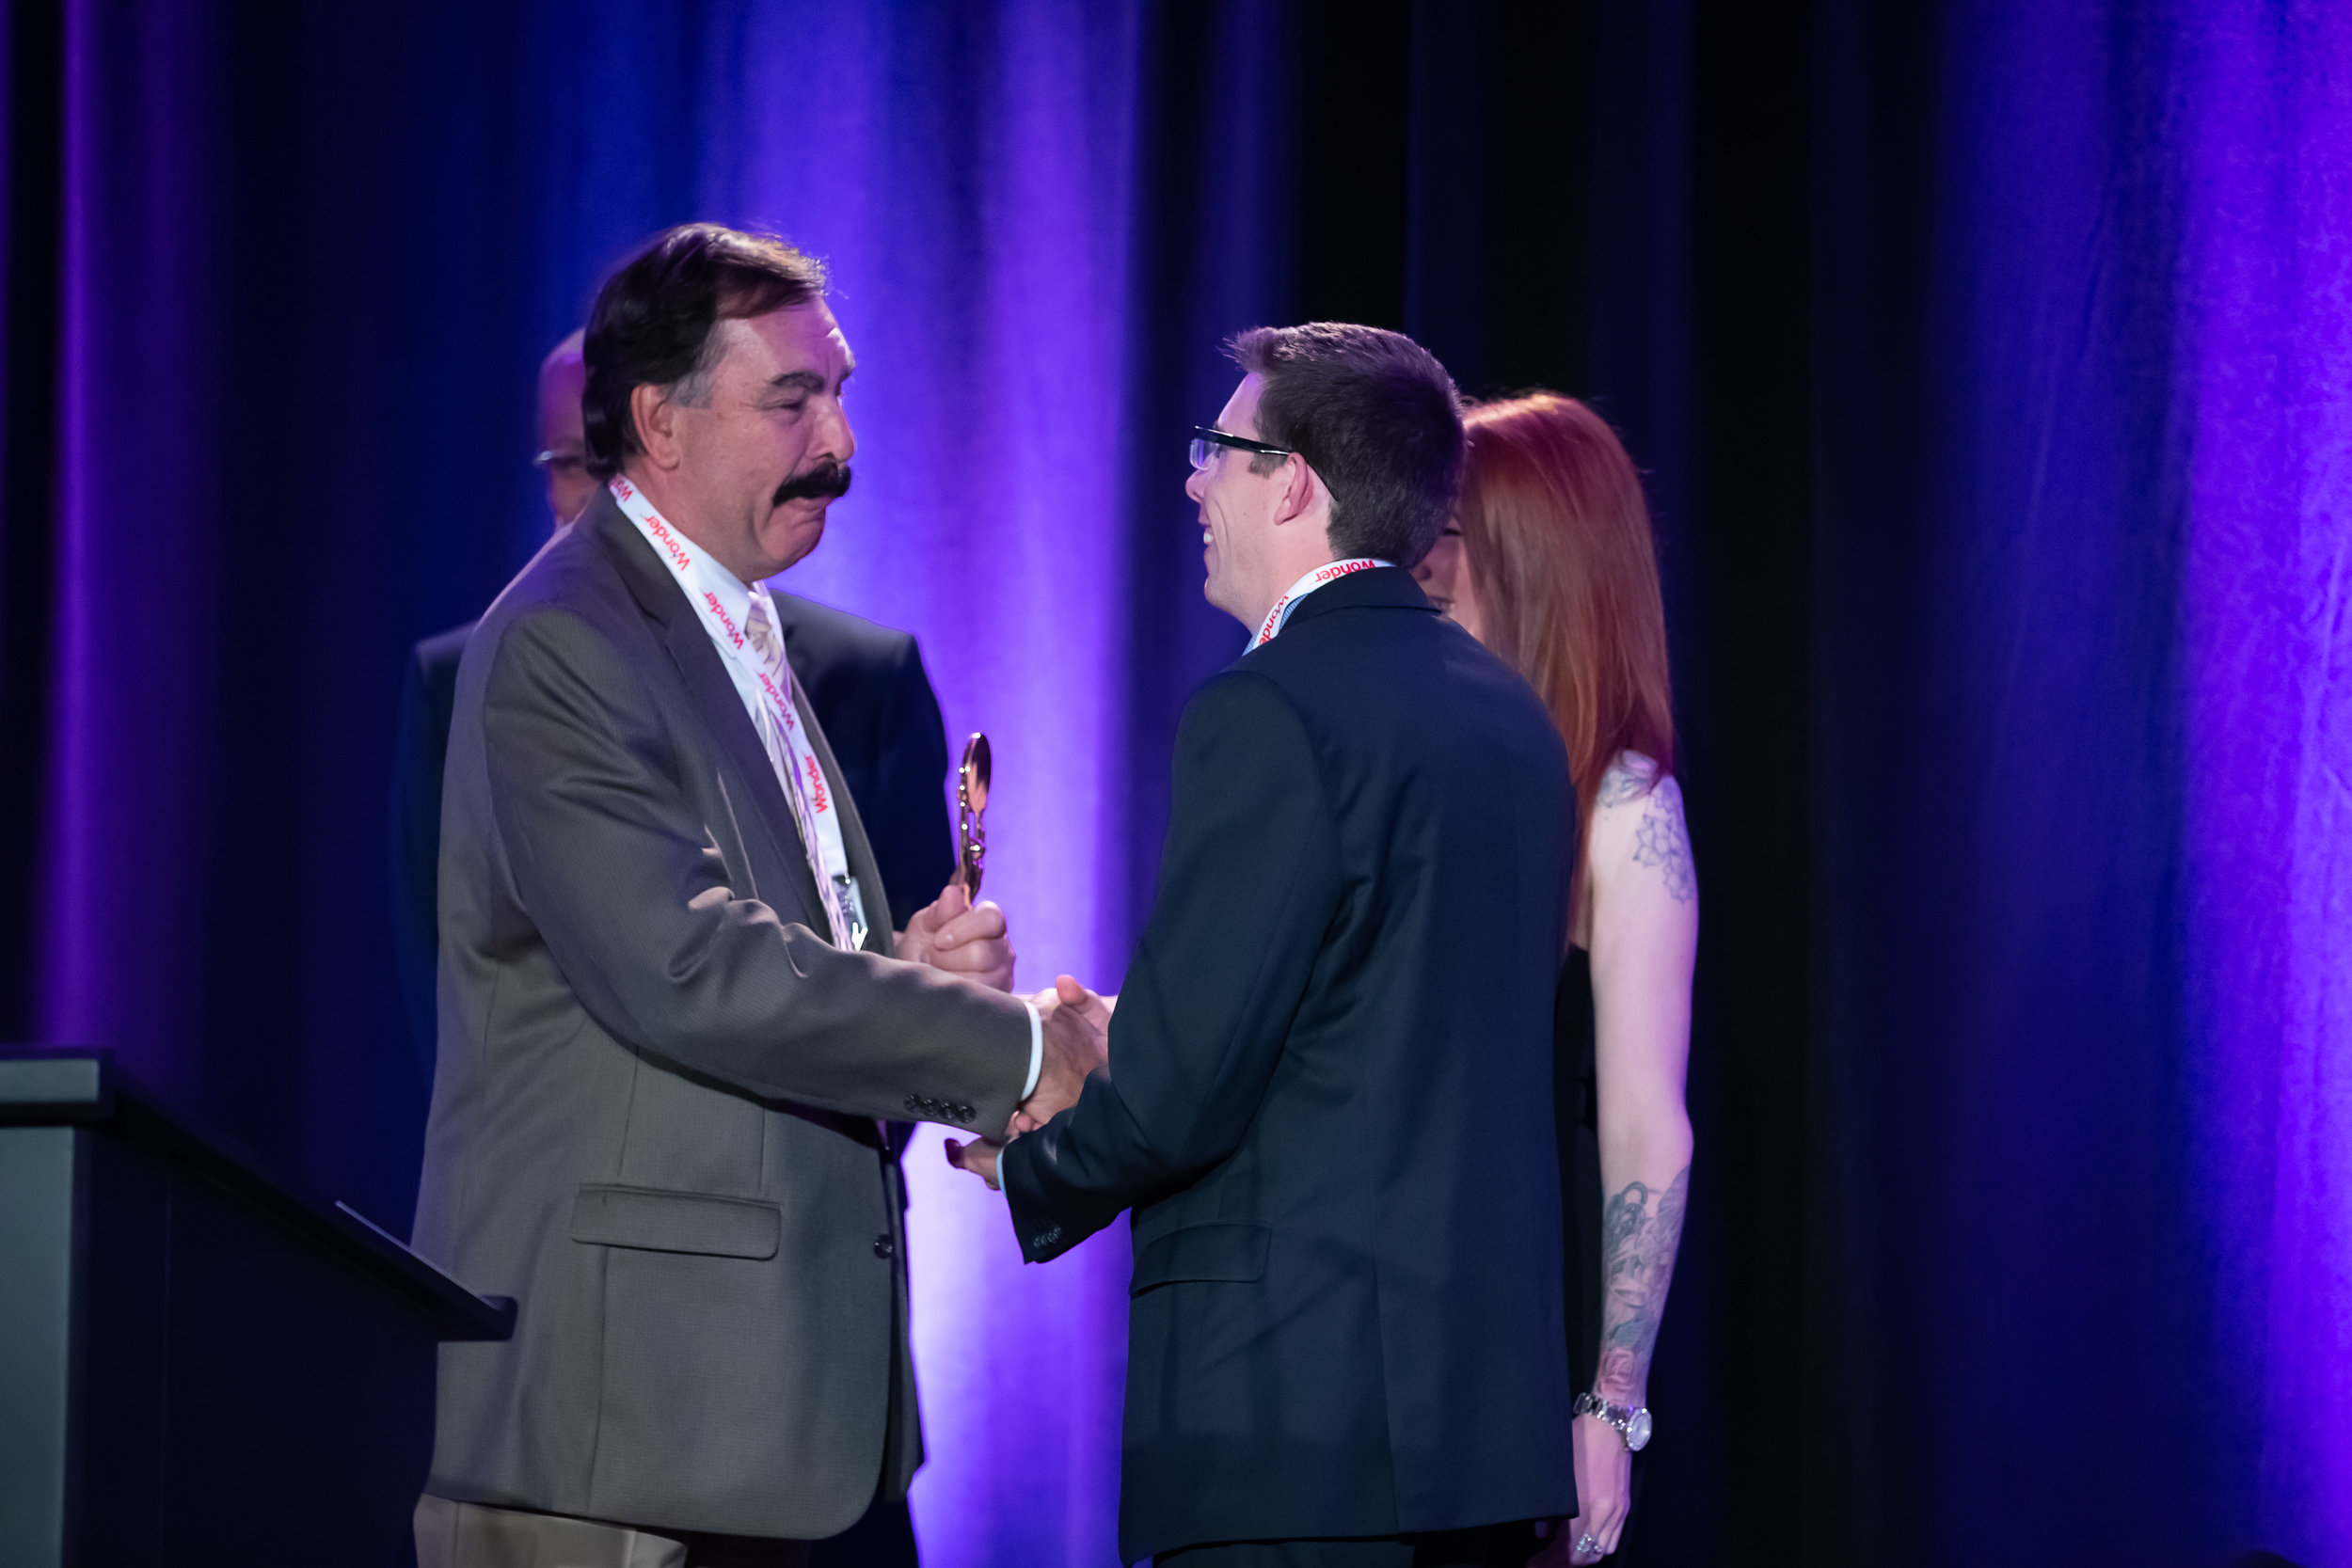 Bob Brema (William M. Dunne & Associates) shakes hands with DCI Treasurer Nigel Oliver of Vince's Market and Star Awards Presenter Melissa Lynne-Schaffer